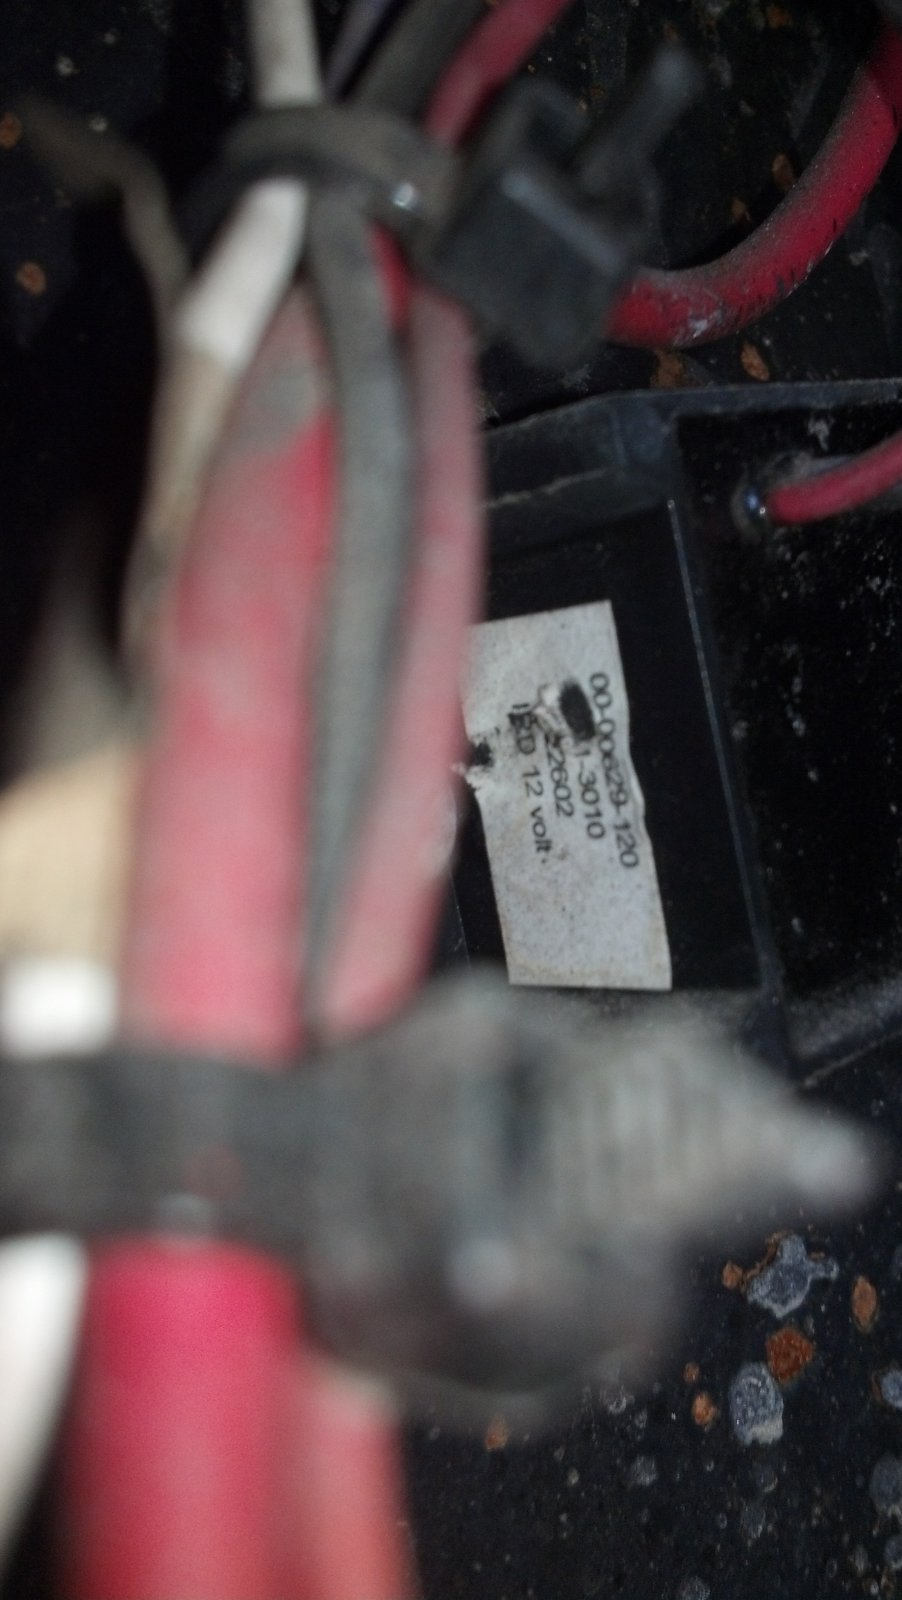 6v House Batteries Are Deformed After 6 Months Use Page 3 Irv2 Club Open Roads Forum Why Should I Switch To Golf Cart Click Image For Larger Version Name Img 20130829 132138 256 Views 86 Size 1441